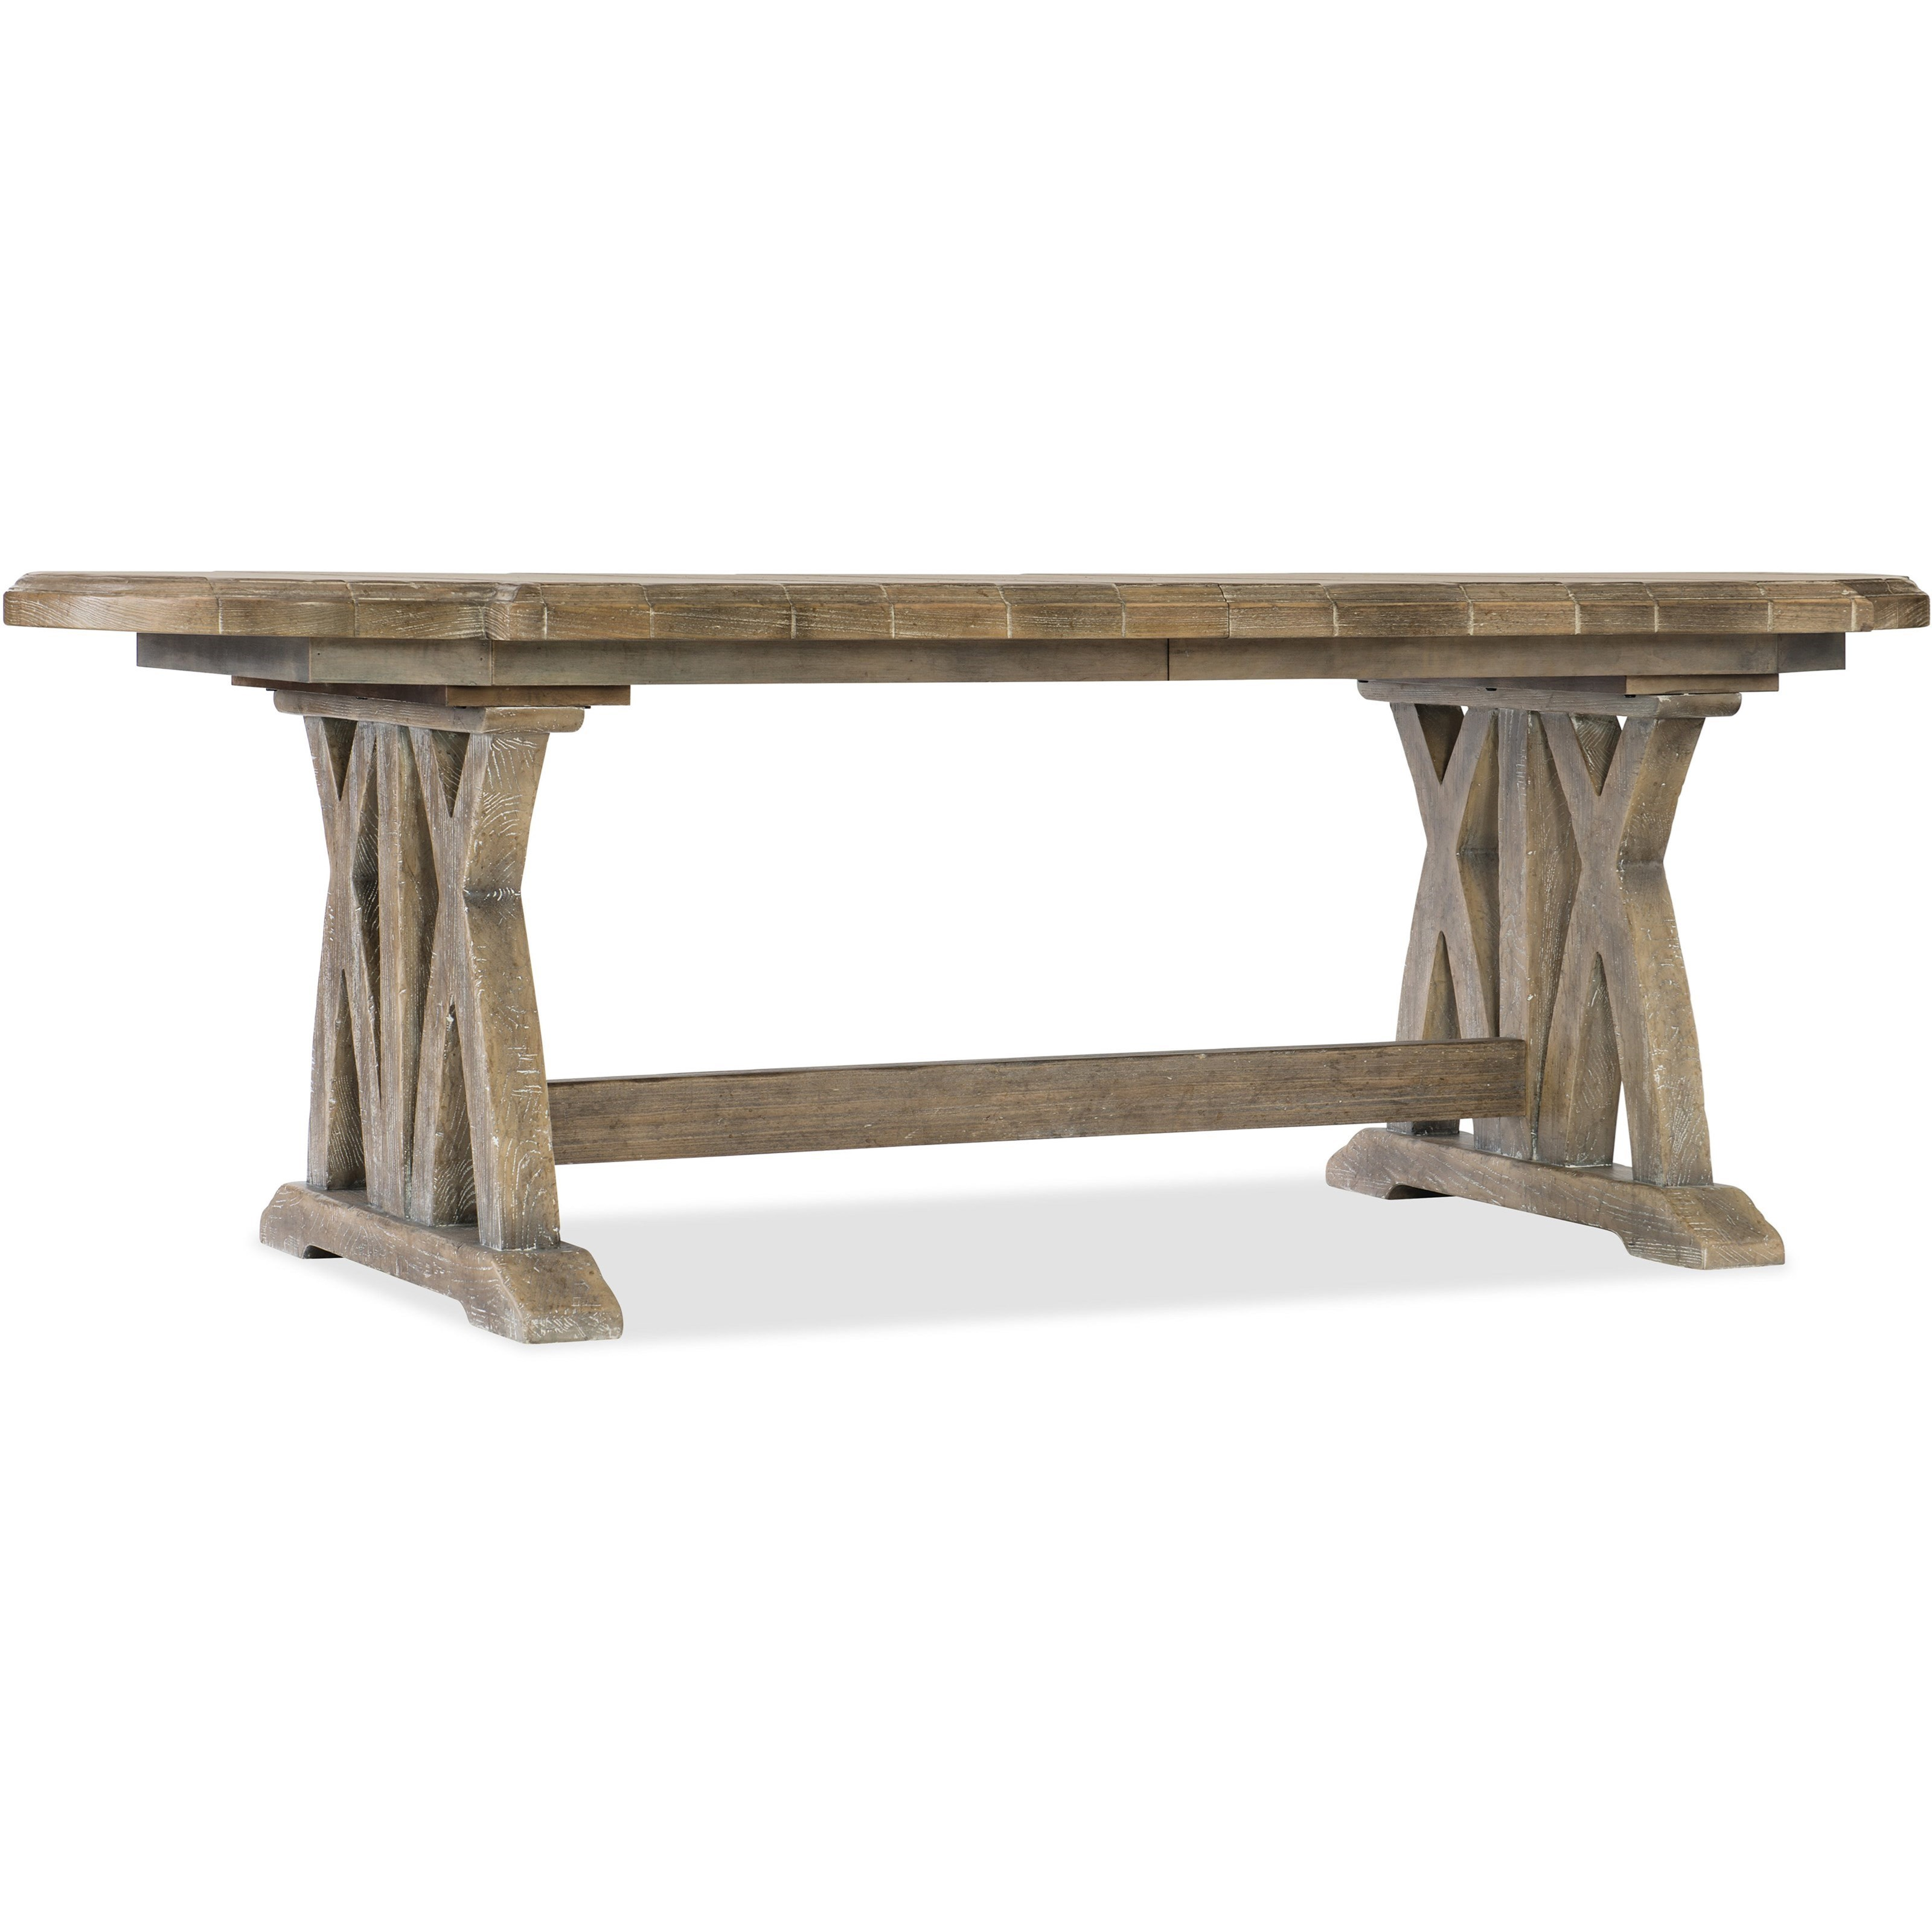 "Boheme Colibri 88"" Trestle Dining Table by Hooker Furniture at Miller Waldrop Furniture and Decor"